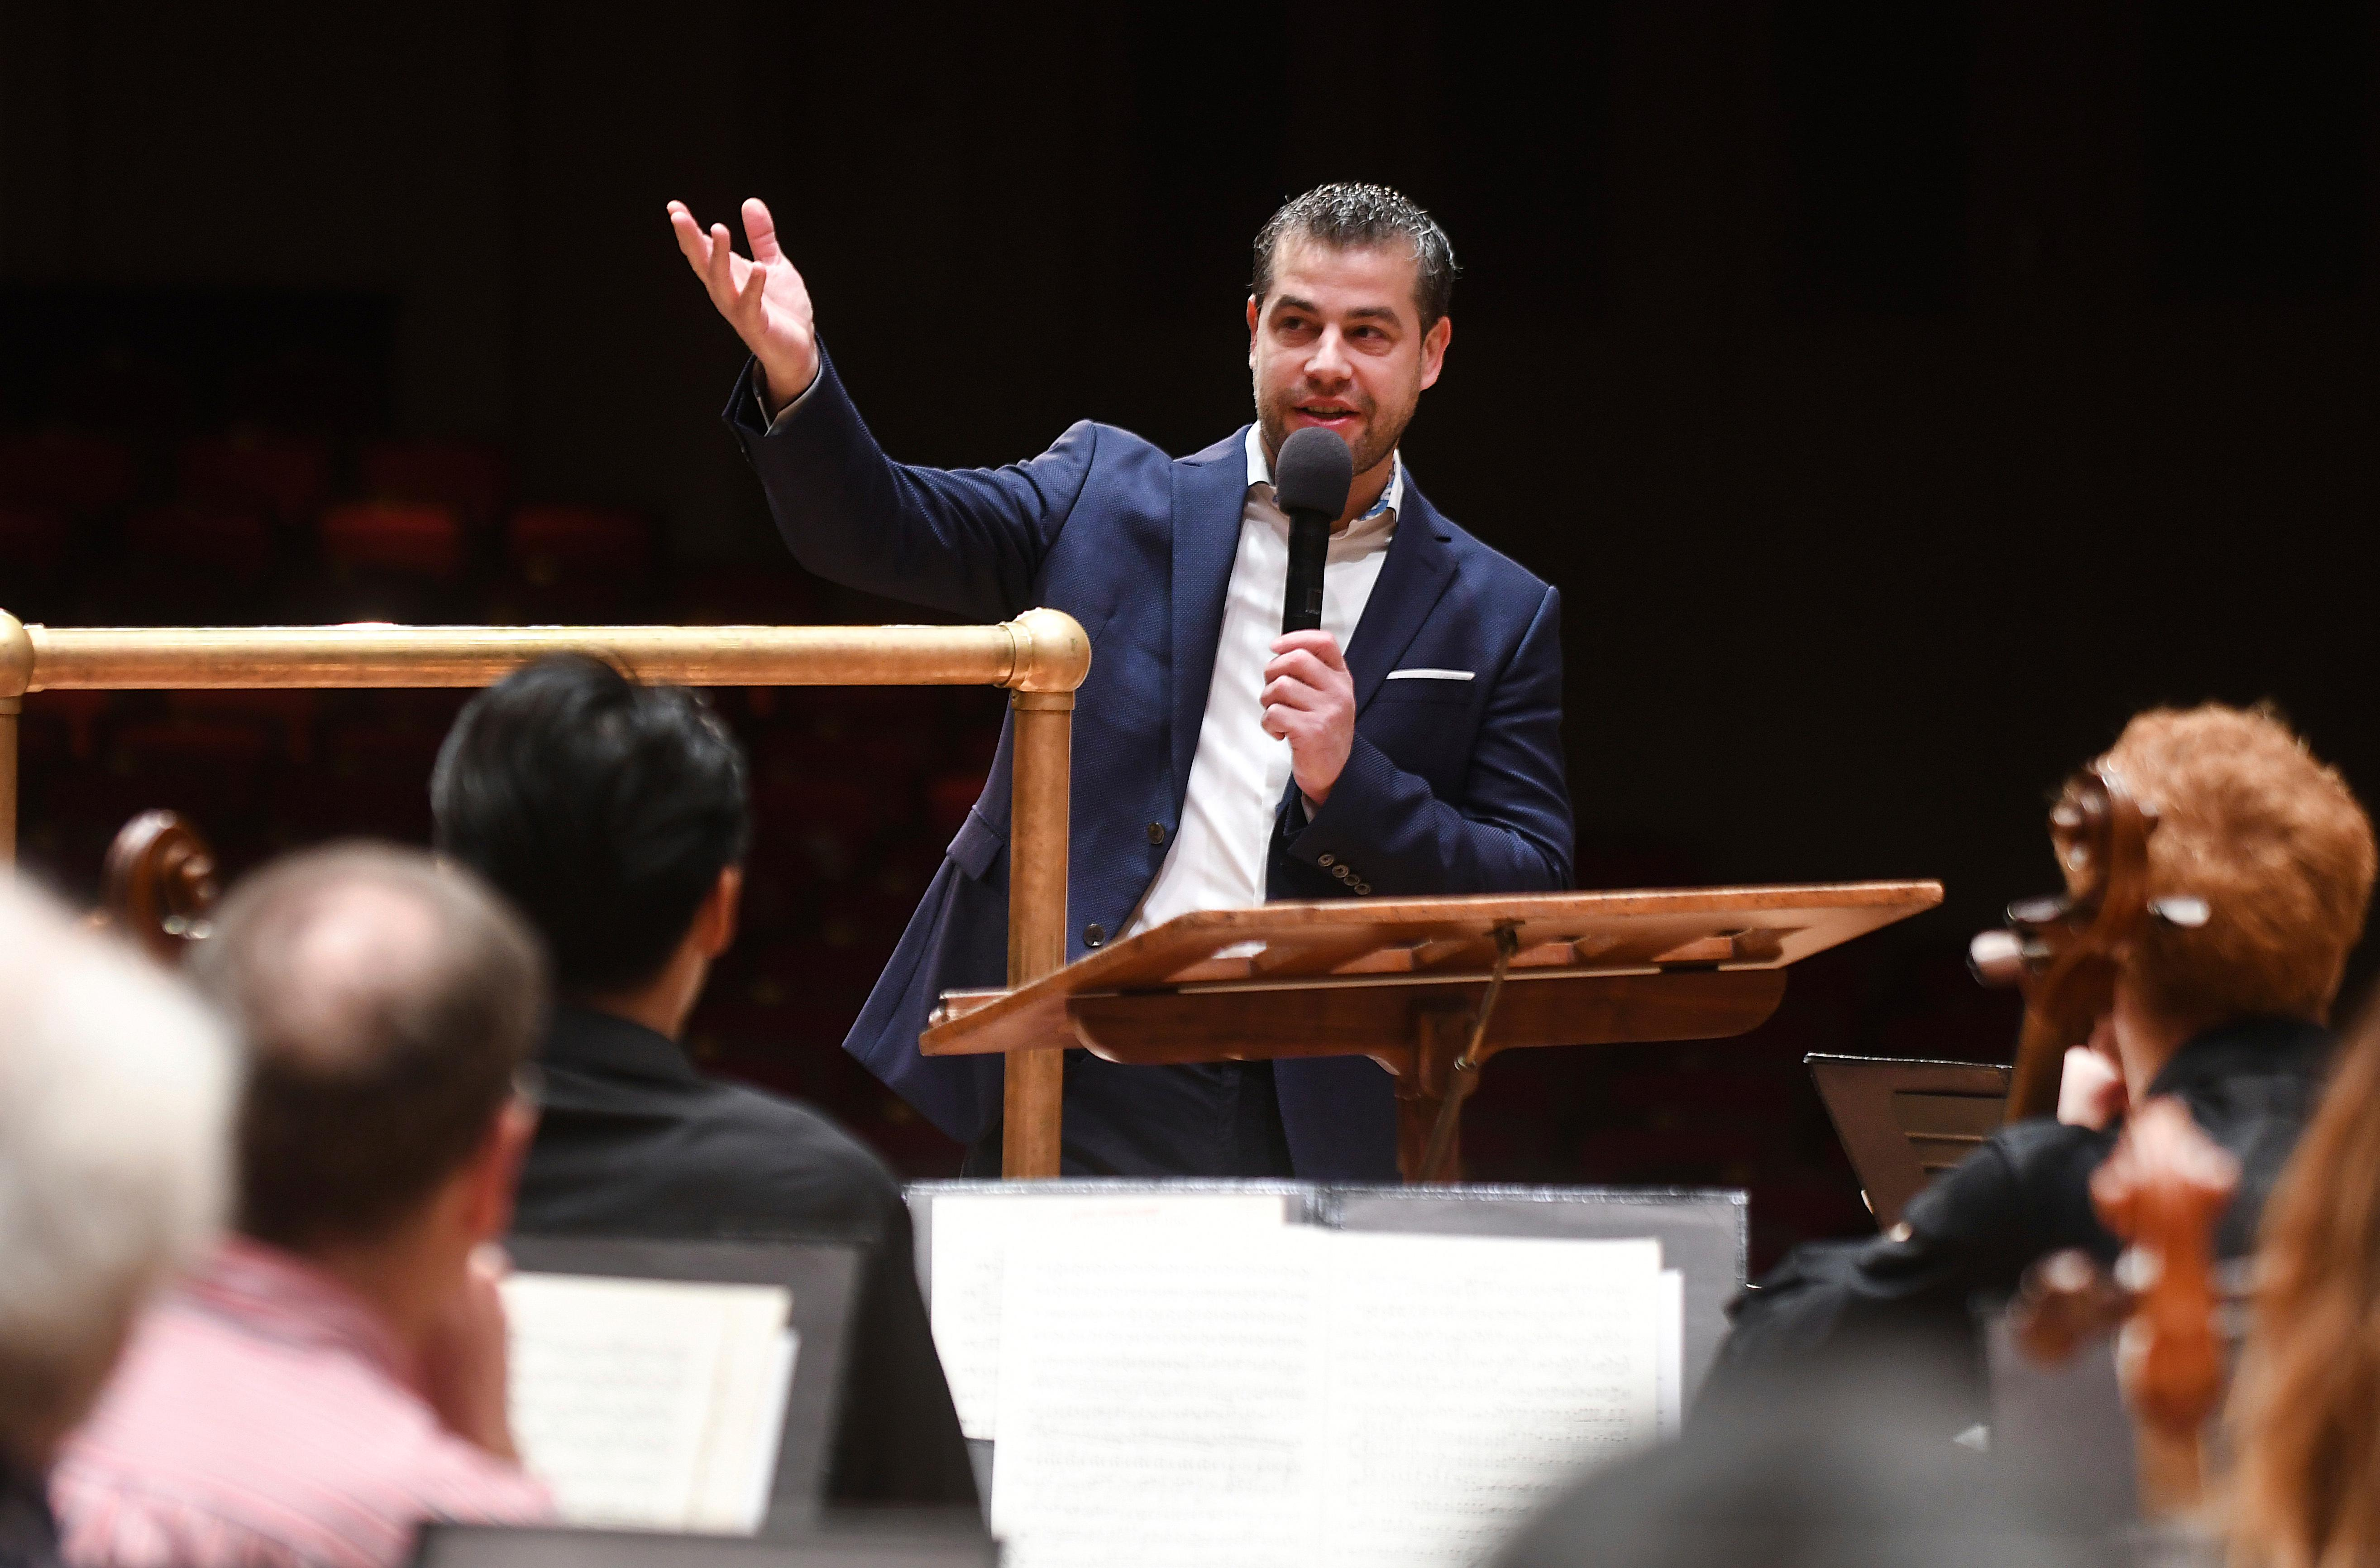 Italian conductor Jader Bignamini addresses members of The Detroit Symphony Orchestra after the announcement of being named the new music director, succeeding Leonard Slatkin during a ceremony held at the Max M. Fisher Music Center in Detroit, on Wednesday, Jan. 22, 2020.{ } (Max Ortiz/Detroit News via AP)